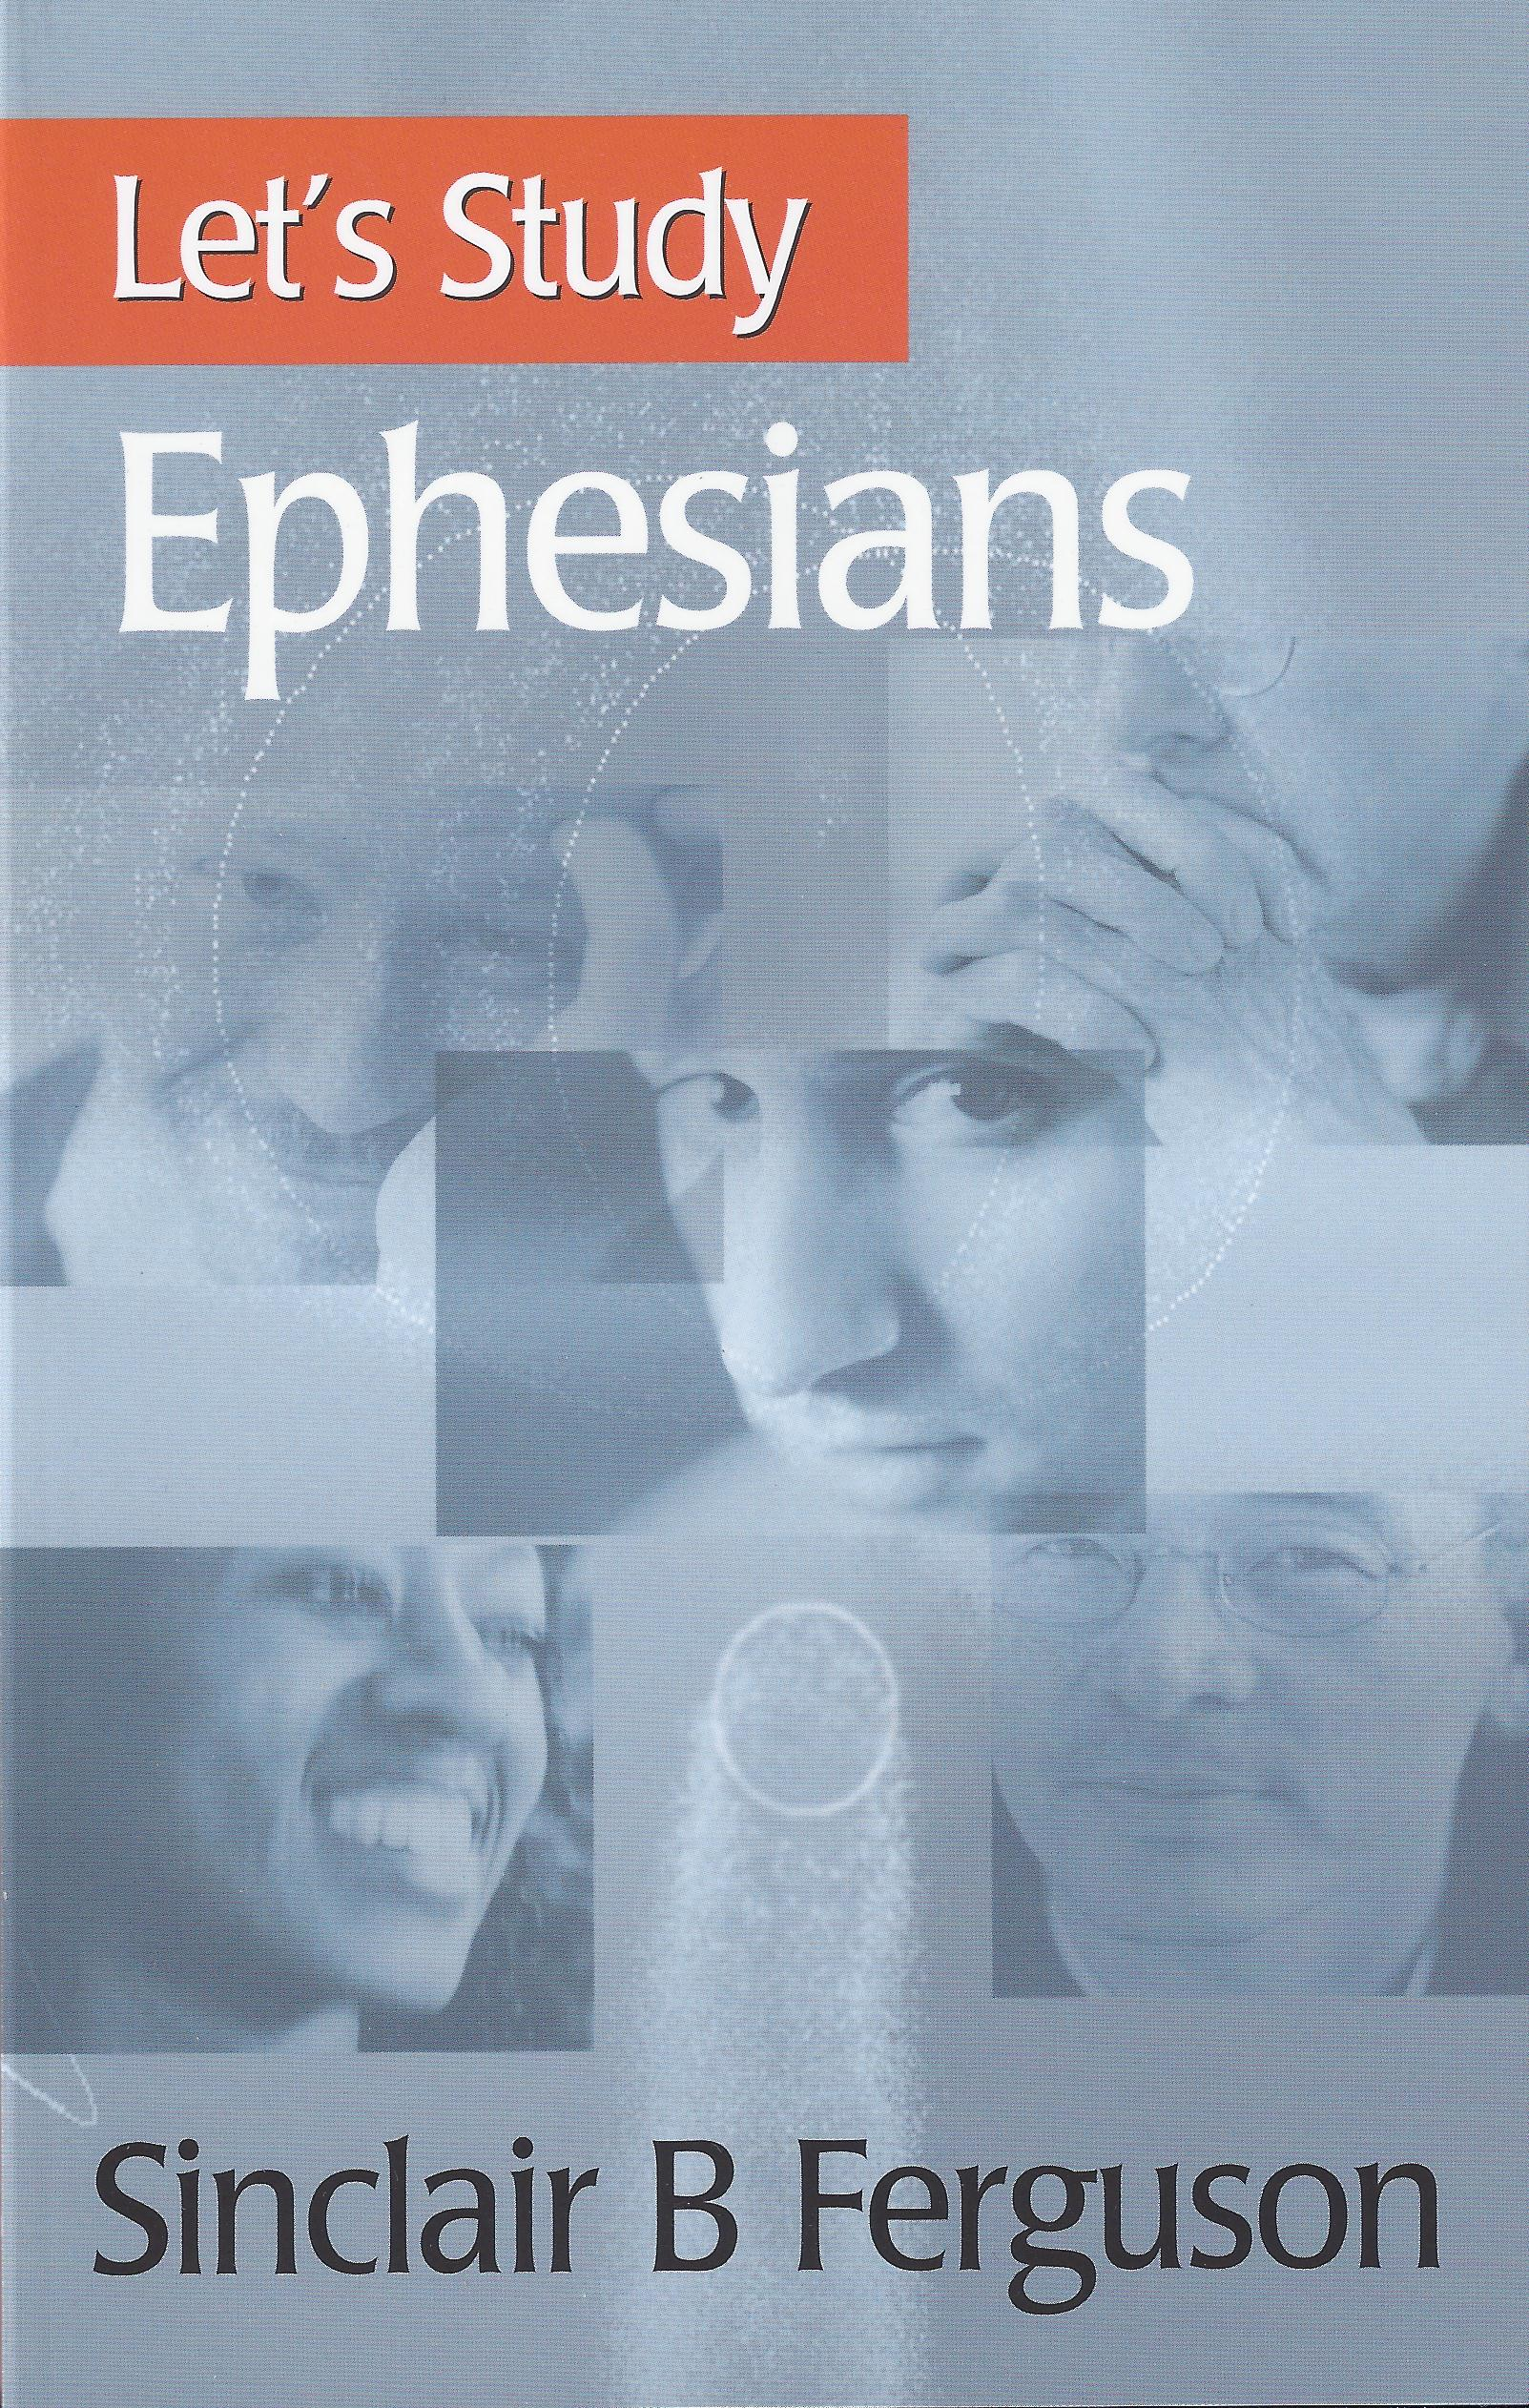 cover image for let's study Ephesians by Sinclair Ferguson